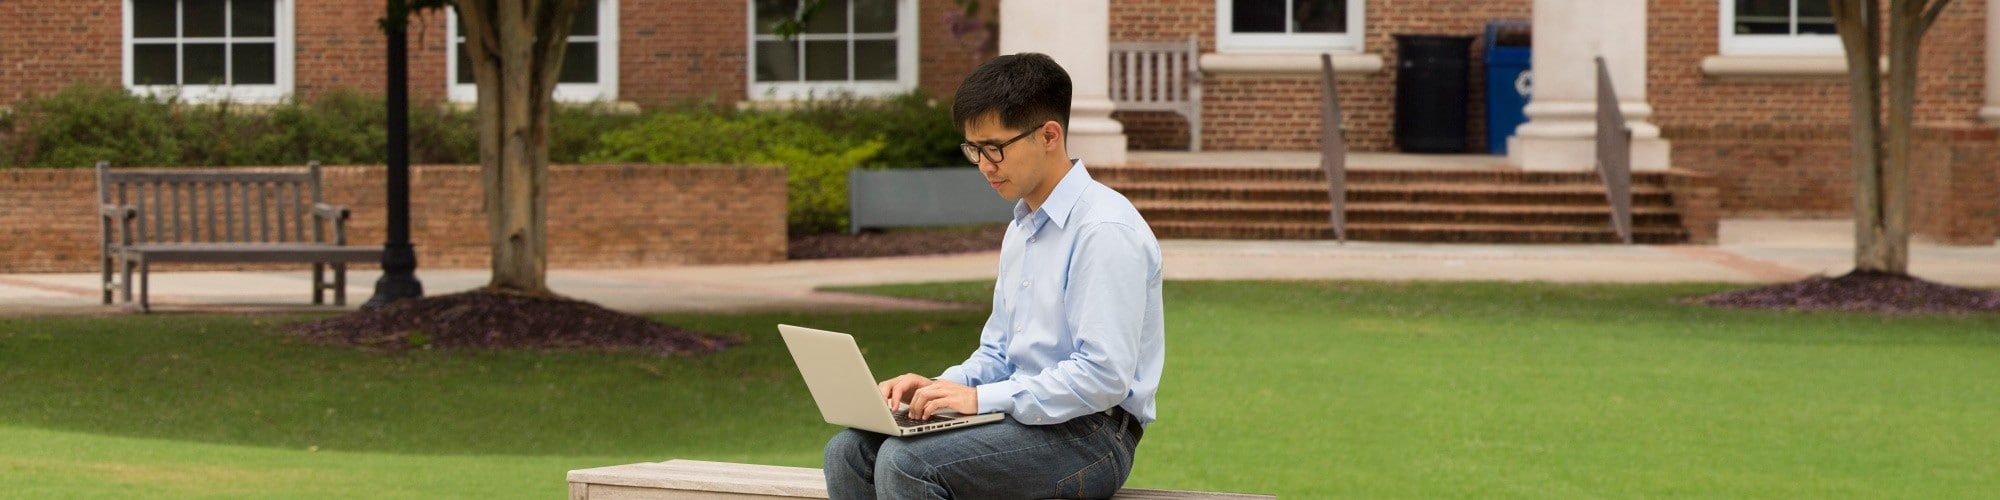 Student on Cary Academy campus sitting with laptop on lap